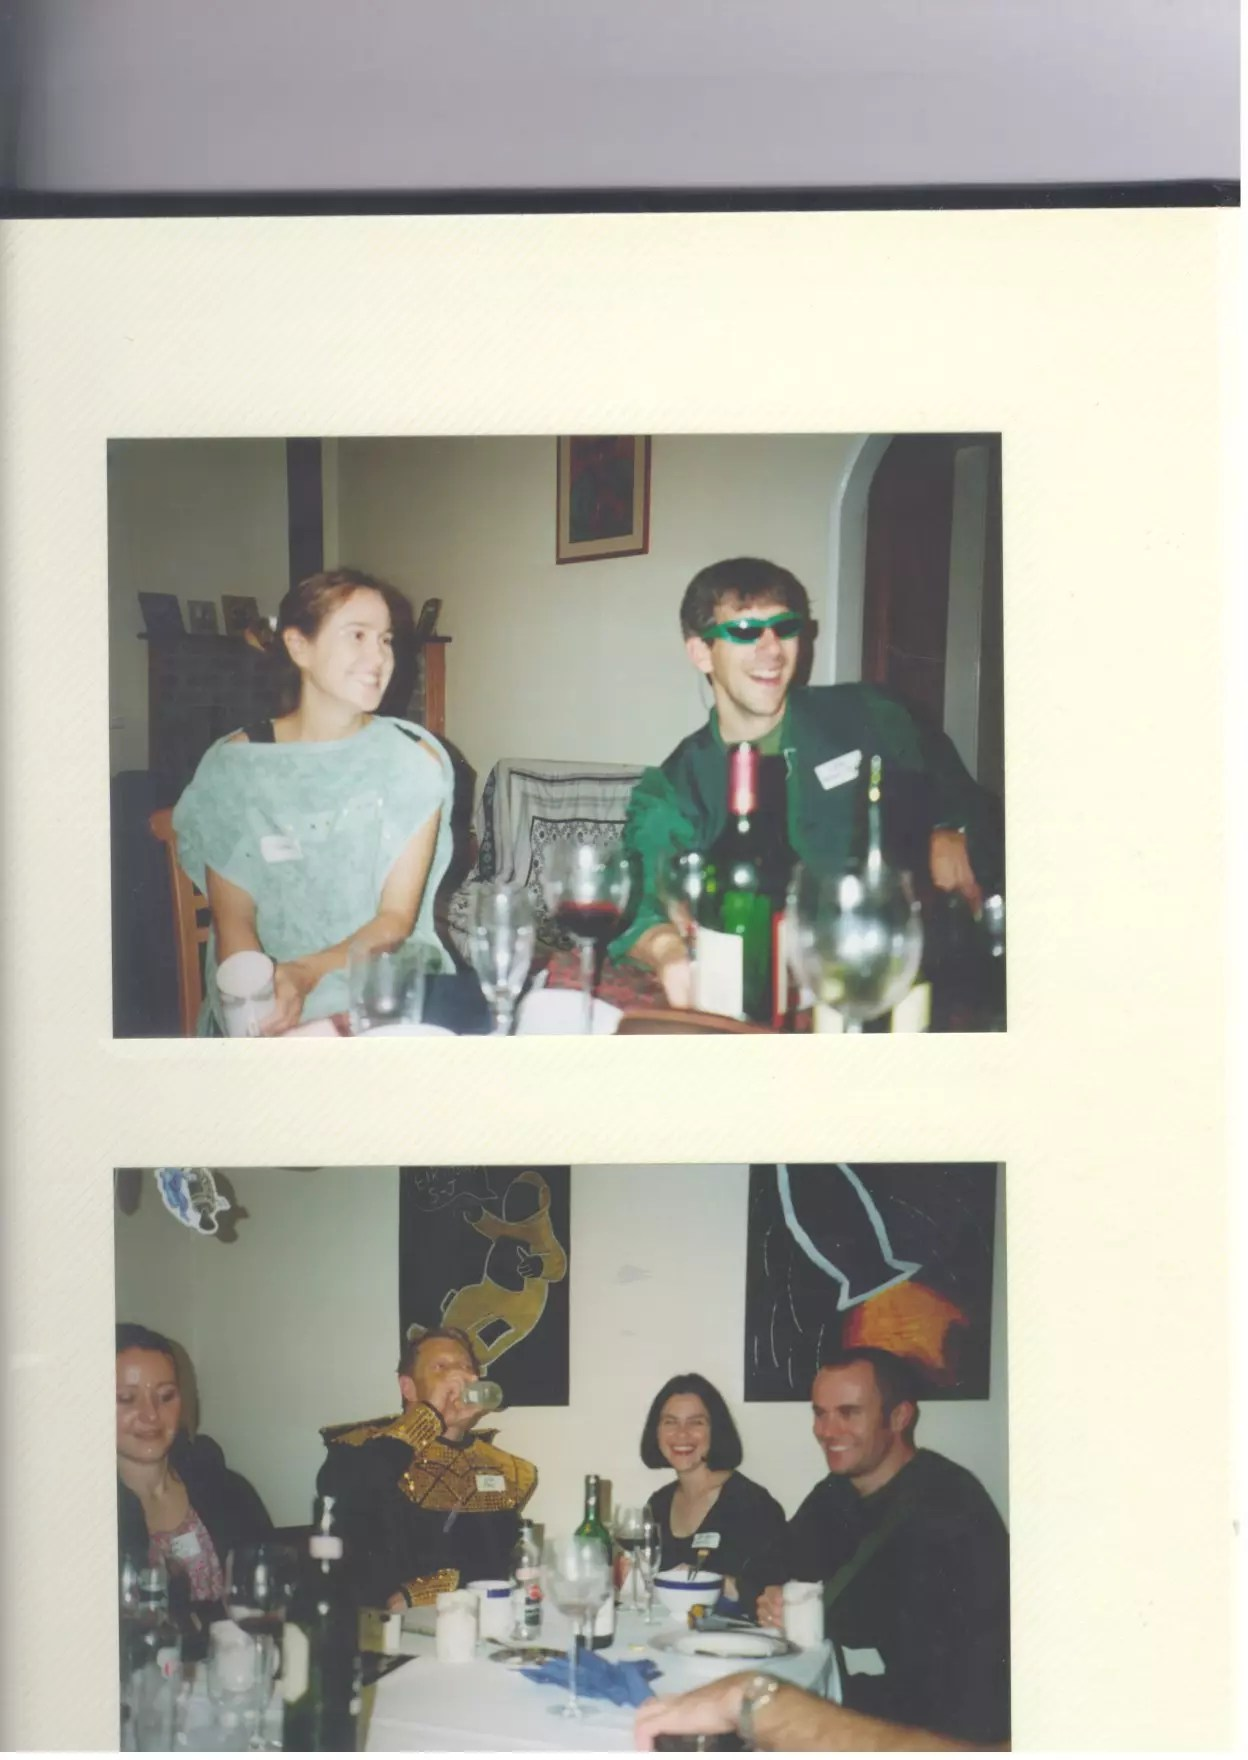 Sci fi party photo